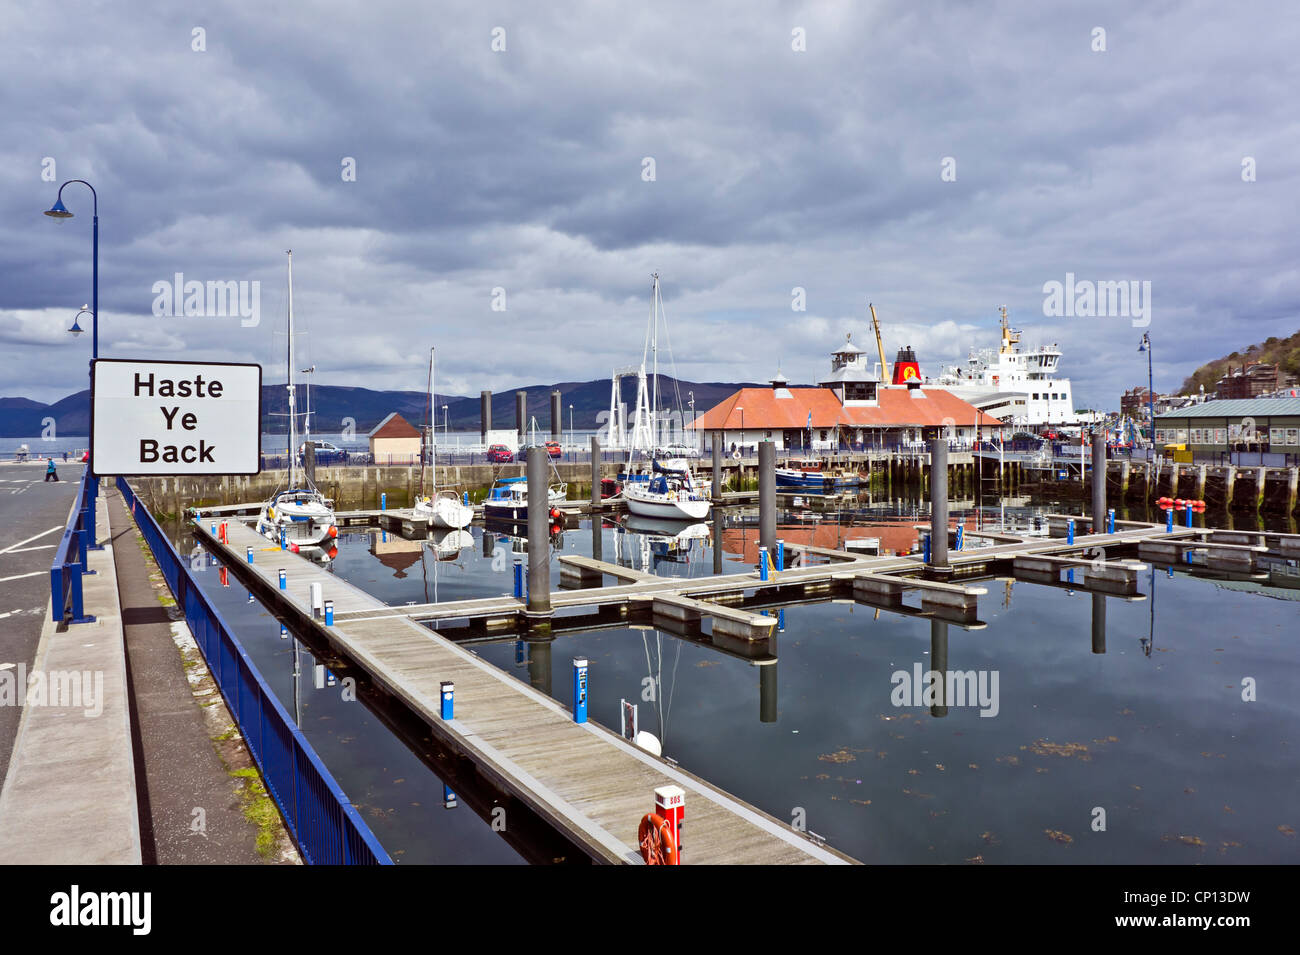 Rothesay Caledonian Macbrayne pier area and inner basin on the island of Bute in Scotland with M/V Bute and 'Haste - Stock Image